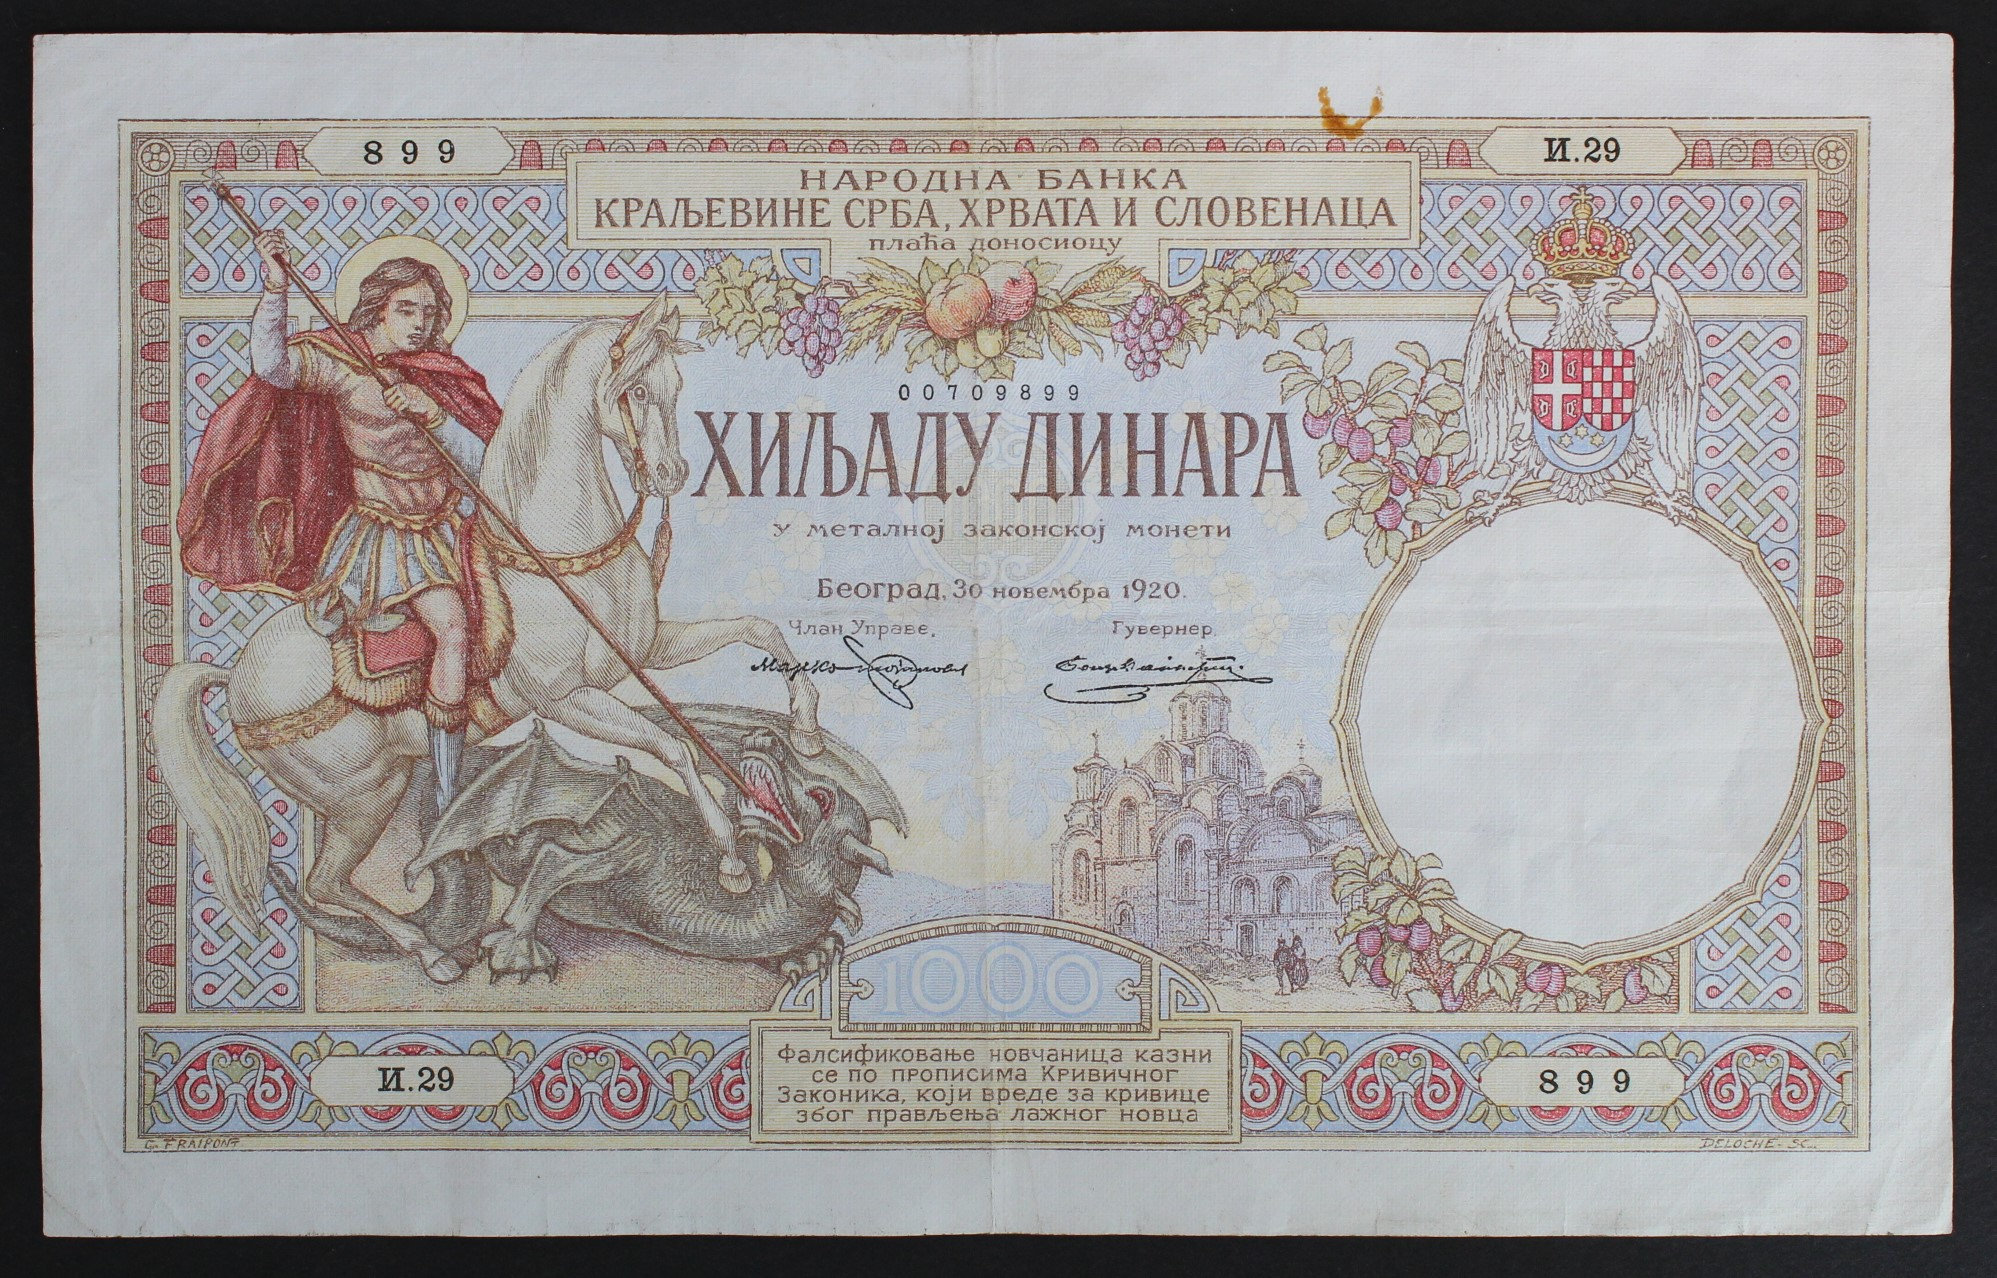 Yugoslavia 1000 Dinara dated 30th November 1920, very rare 1st issue WITHOUT King Karageorge